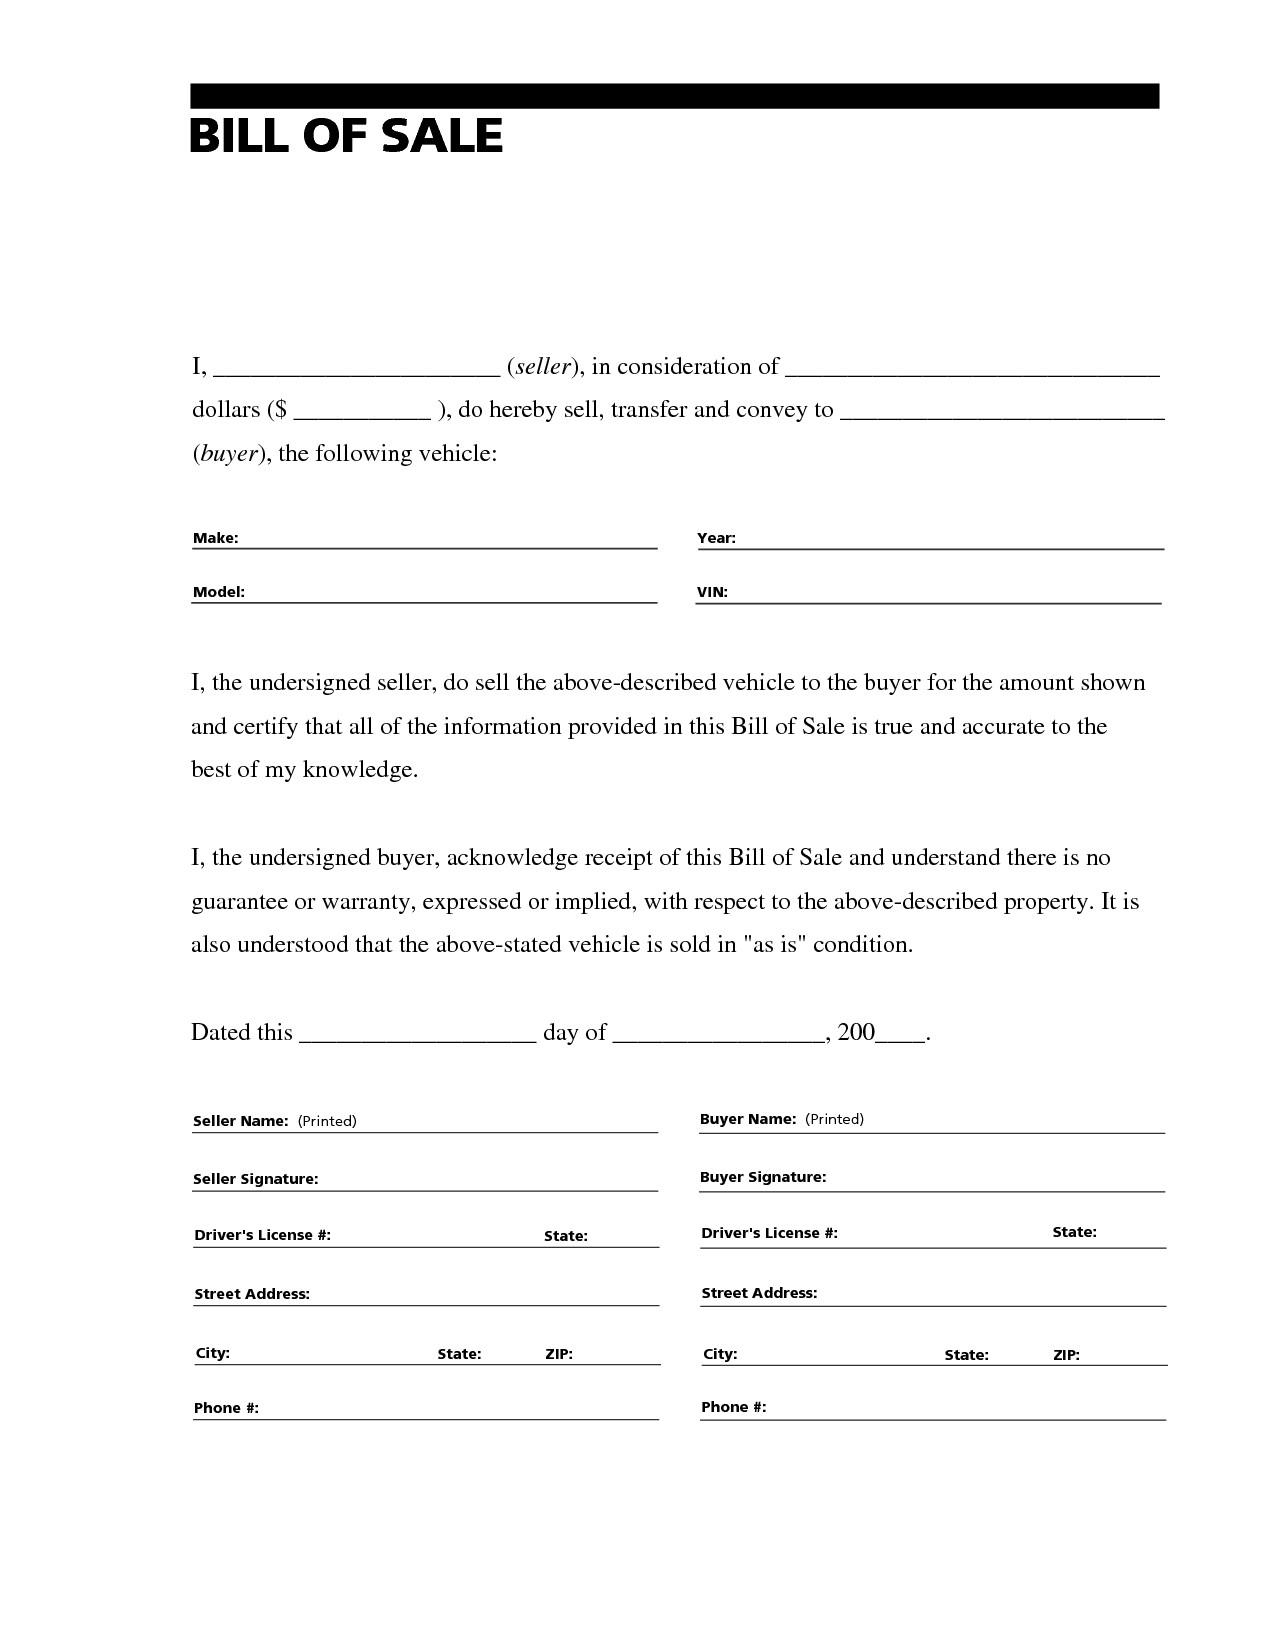 Free Printable Last Will And Testament Blank Forms Florida | Mbm Legal - Free Printable Last Will And Testament Blank Forms Florida